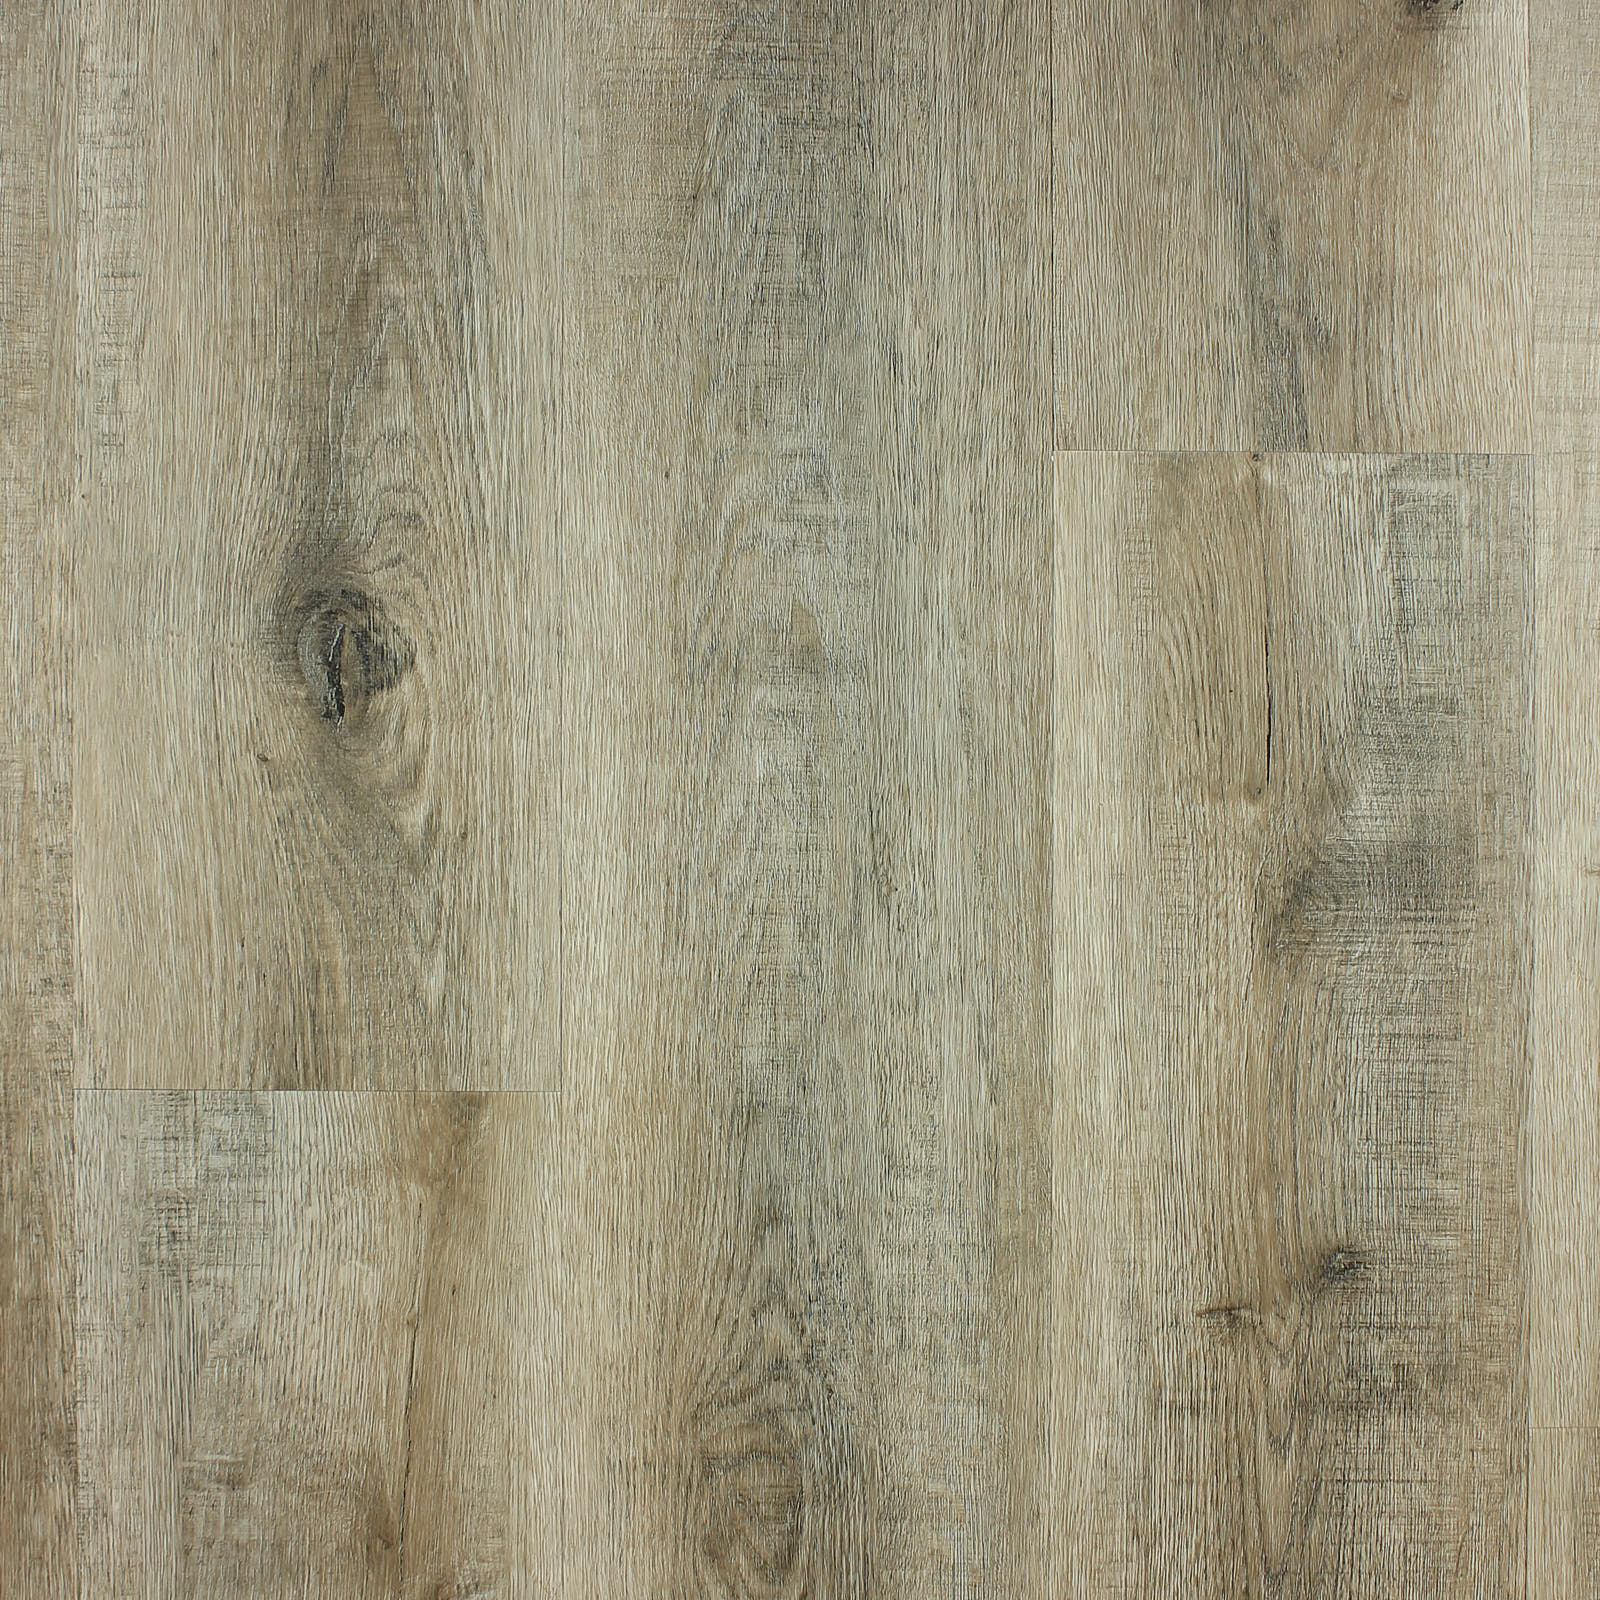 Augusta Doeskin Engineered Vinyl Plank Flooring